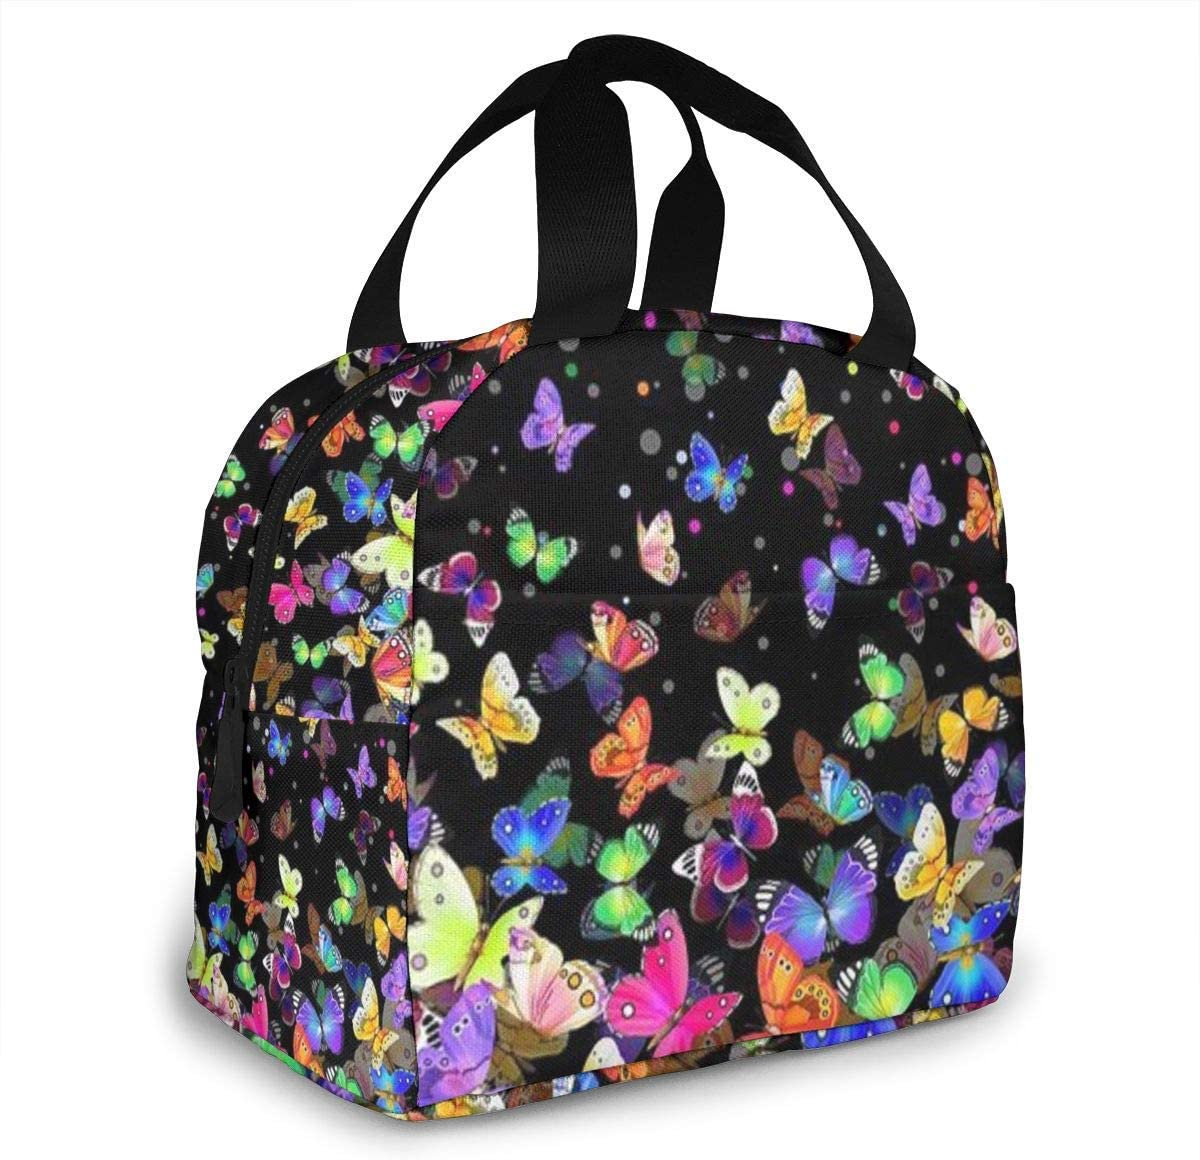 Colorful Butterfly Lunch Bag Women Insulated Cooler Lunchbag Reusable Leakproof Tote Box for Girls Picnic Work School Camping